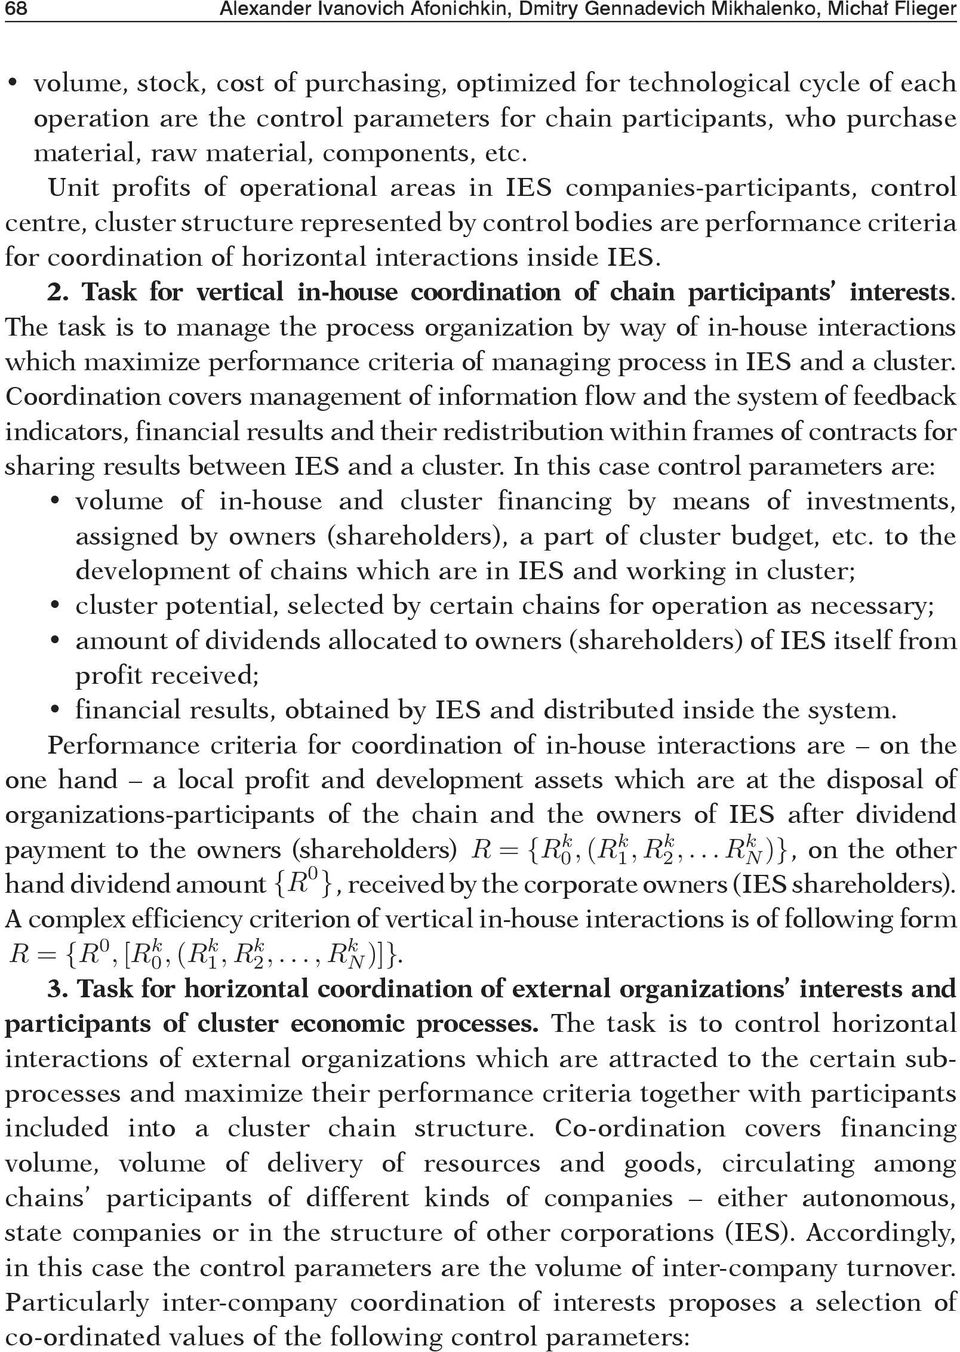 Unit profits of operational areas in IES companies-participants, control centre, cluster structure represented by control bodies are performance criteria for coordination of horizontal interactions